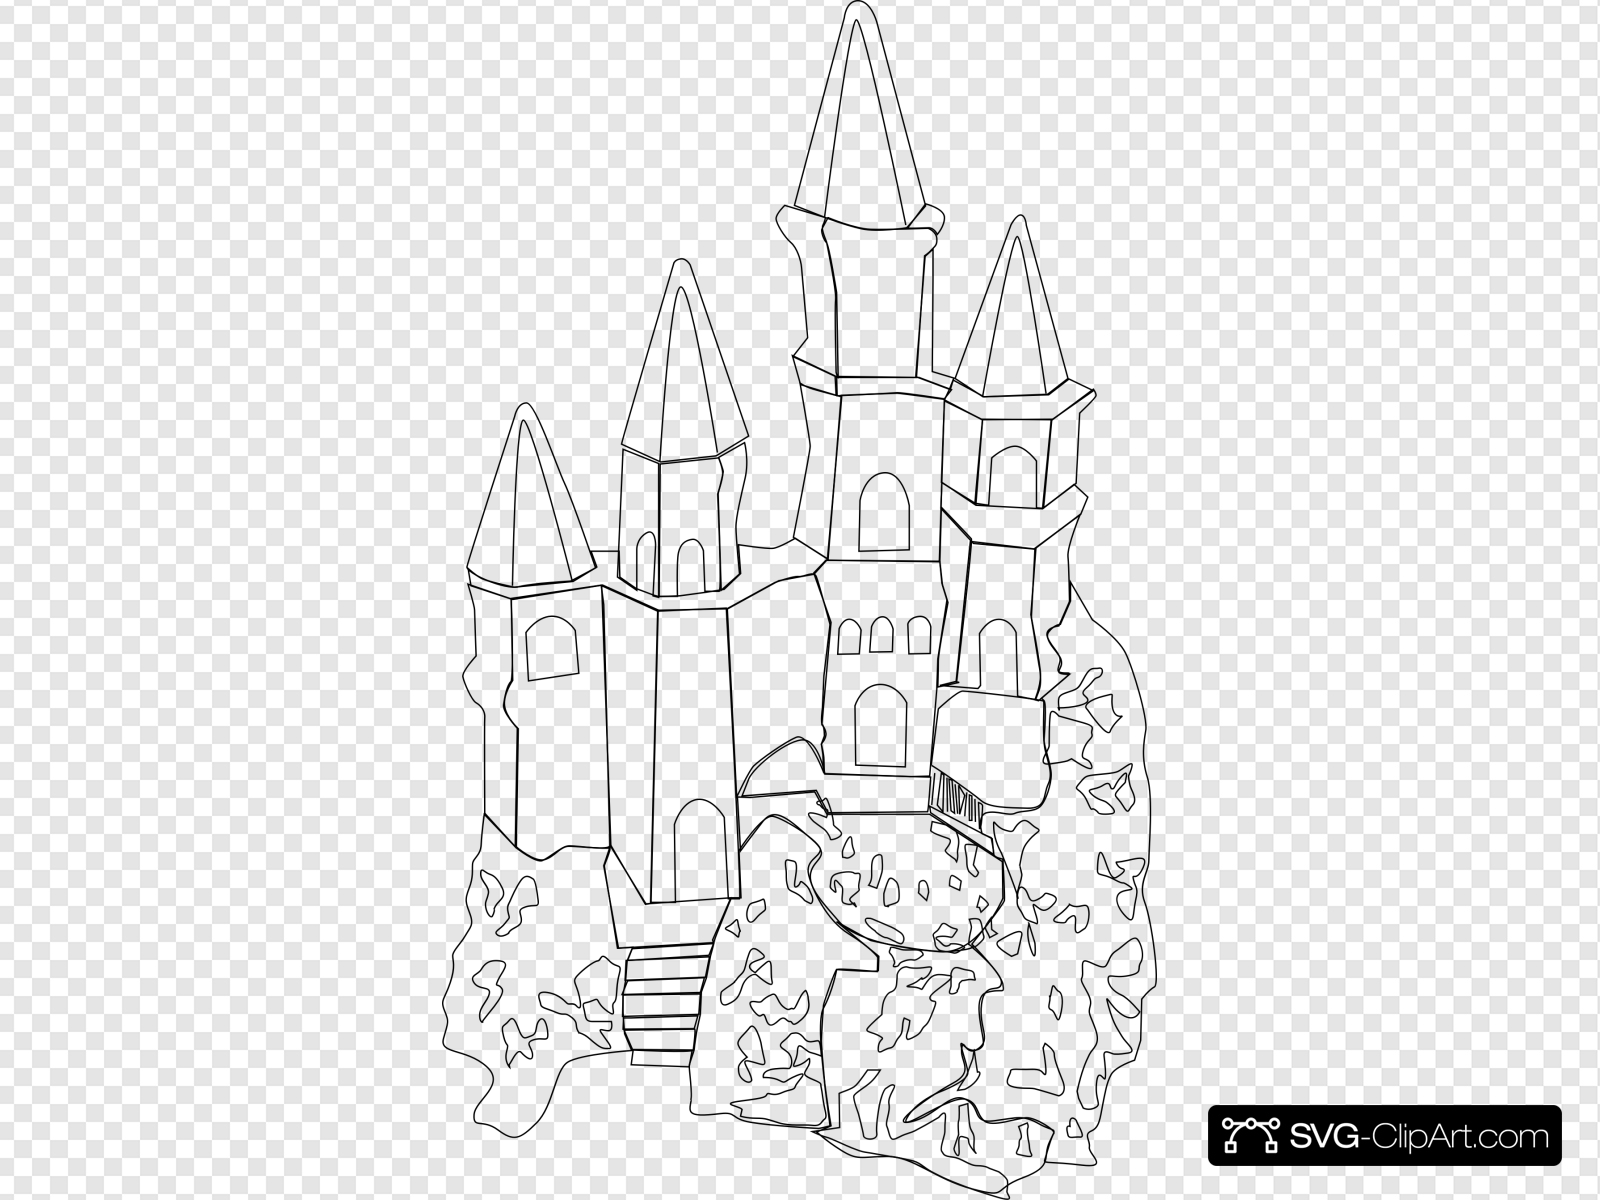 Castle Outline Clip art, Icon and SVG.